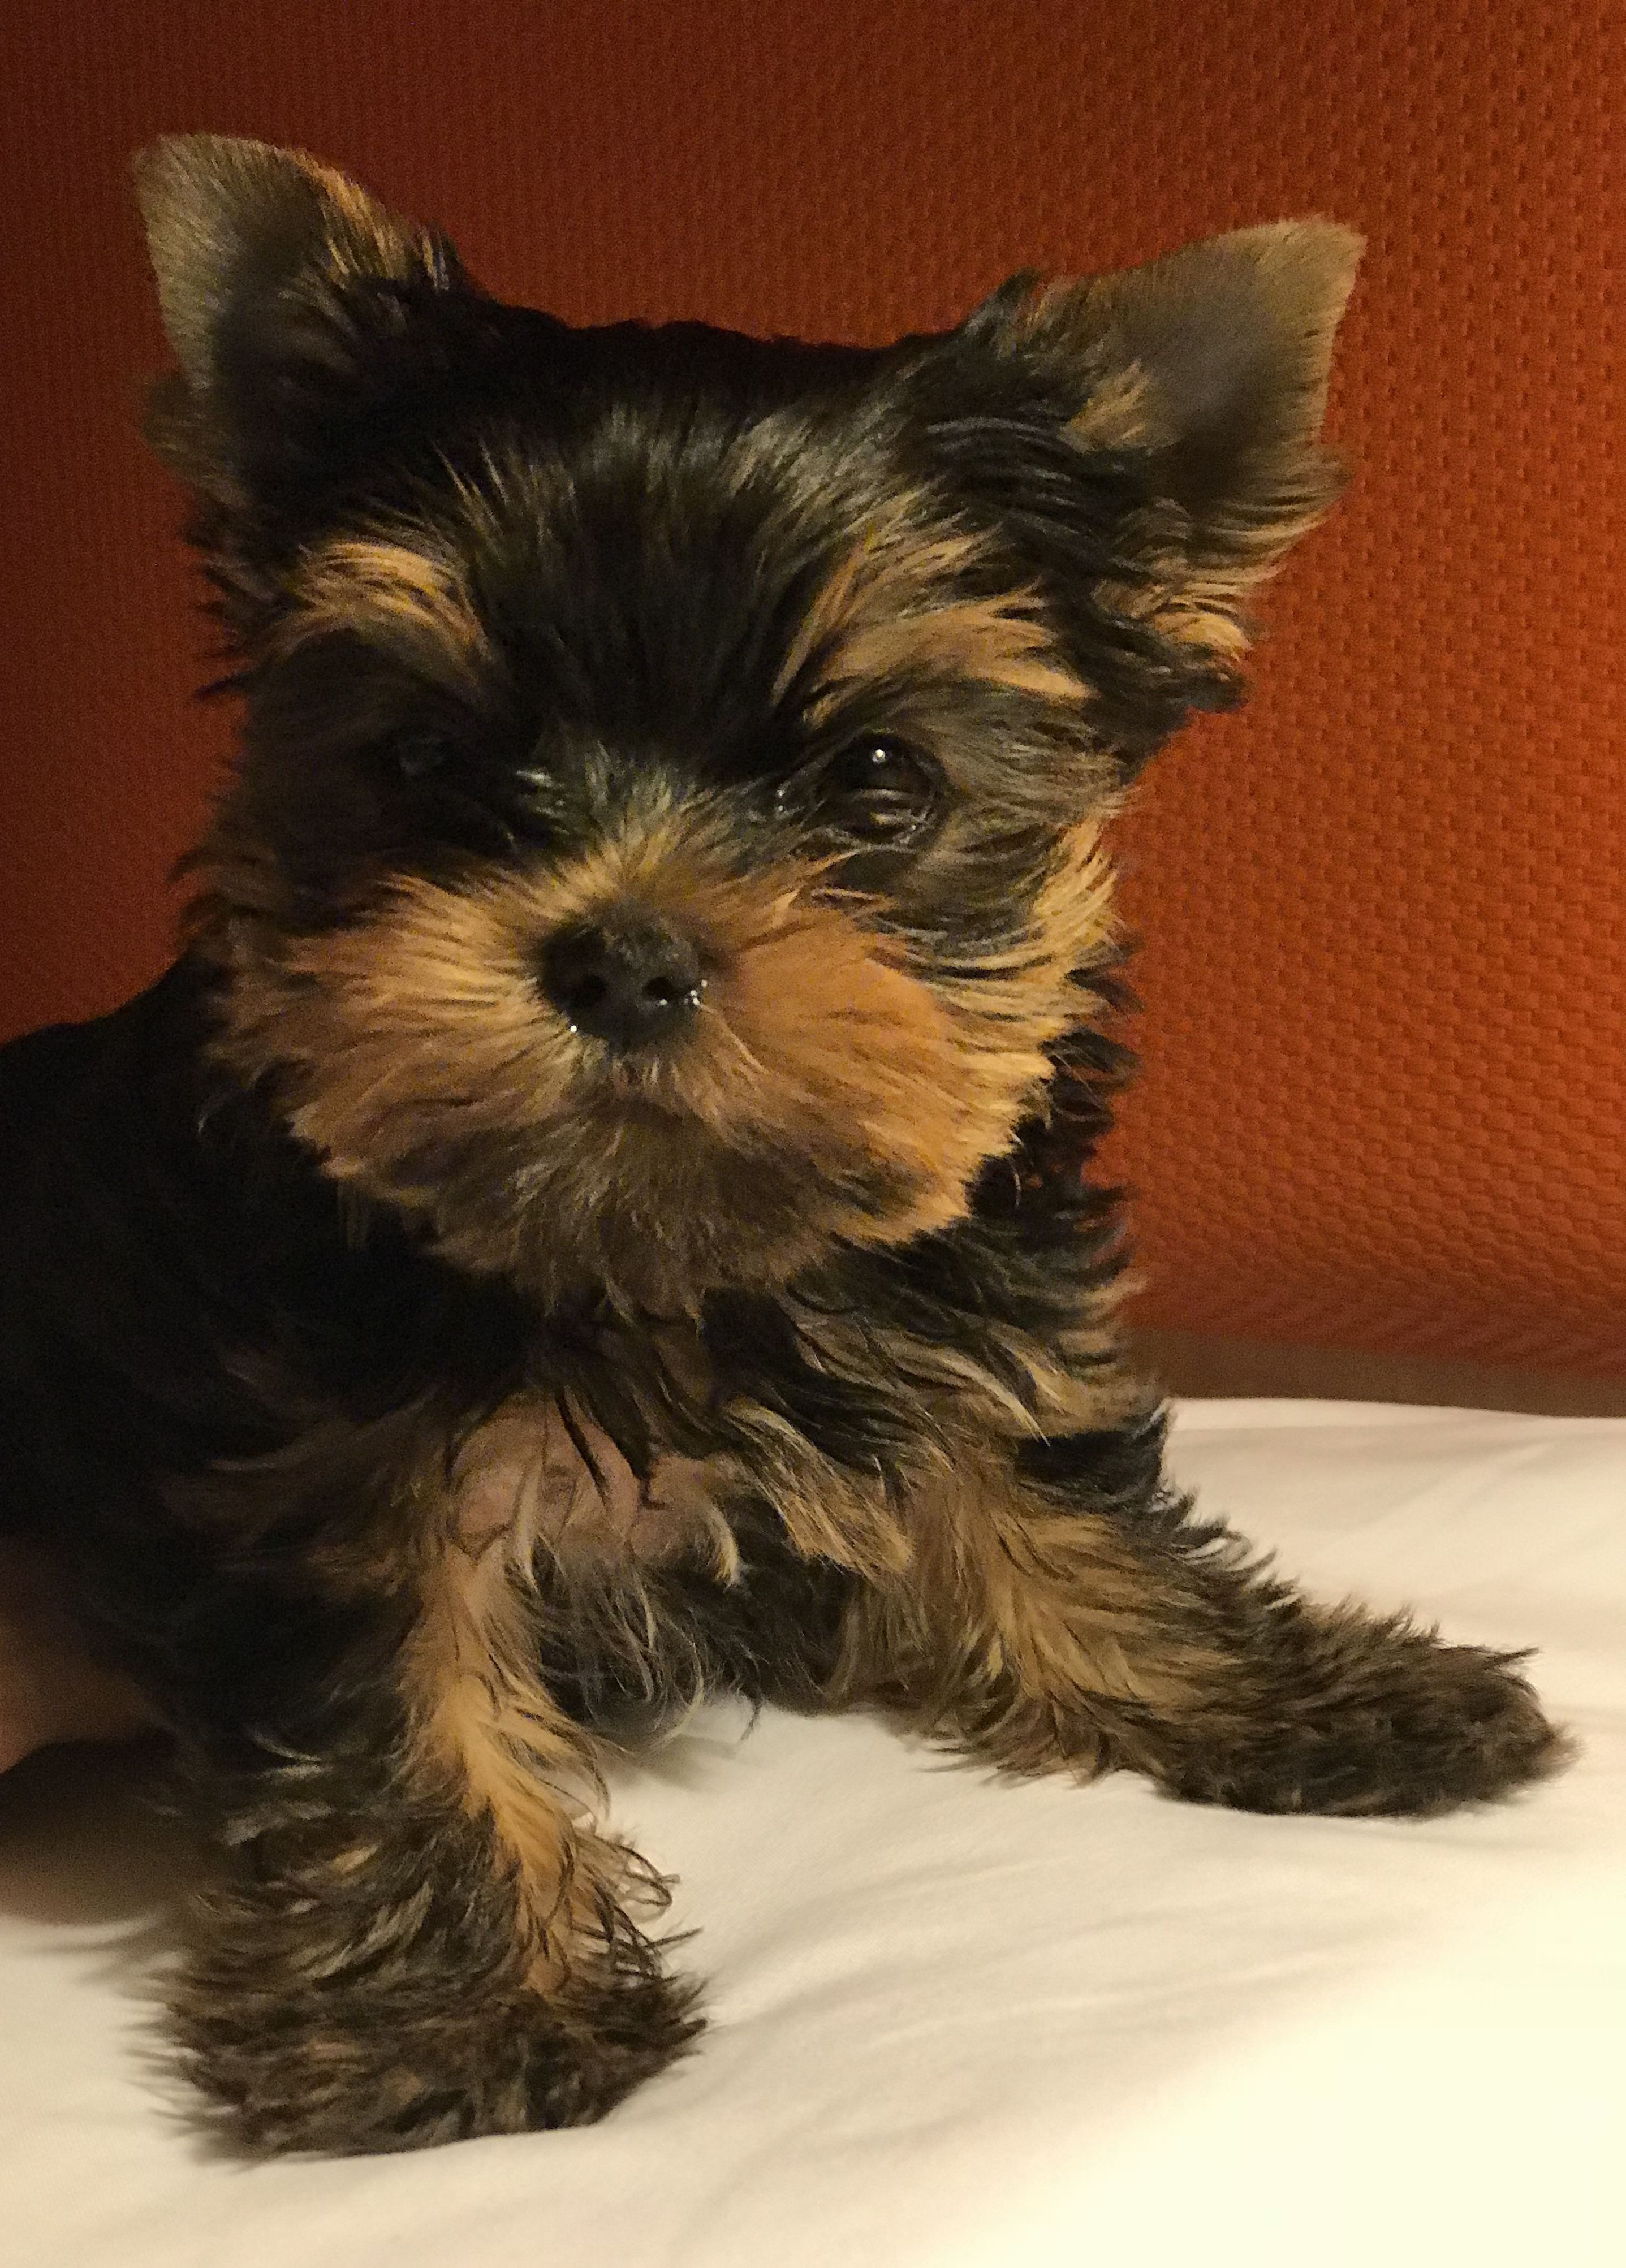 Killian Radford Yorkshire Terriers 540 986 1604 Cute Small Animals Pets Dogs Breeds Yorkshire Terrier